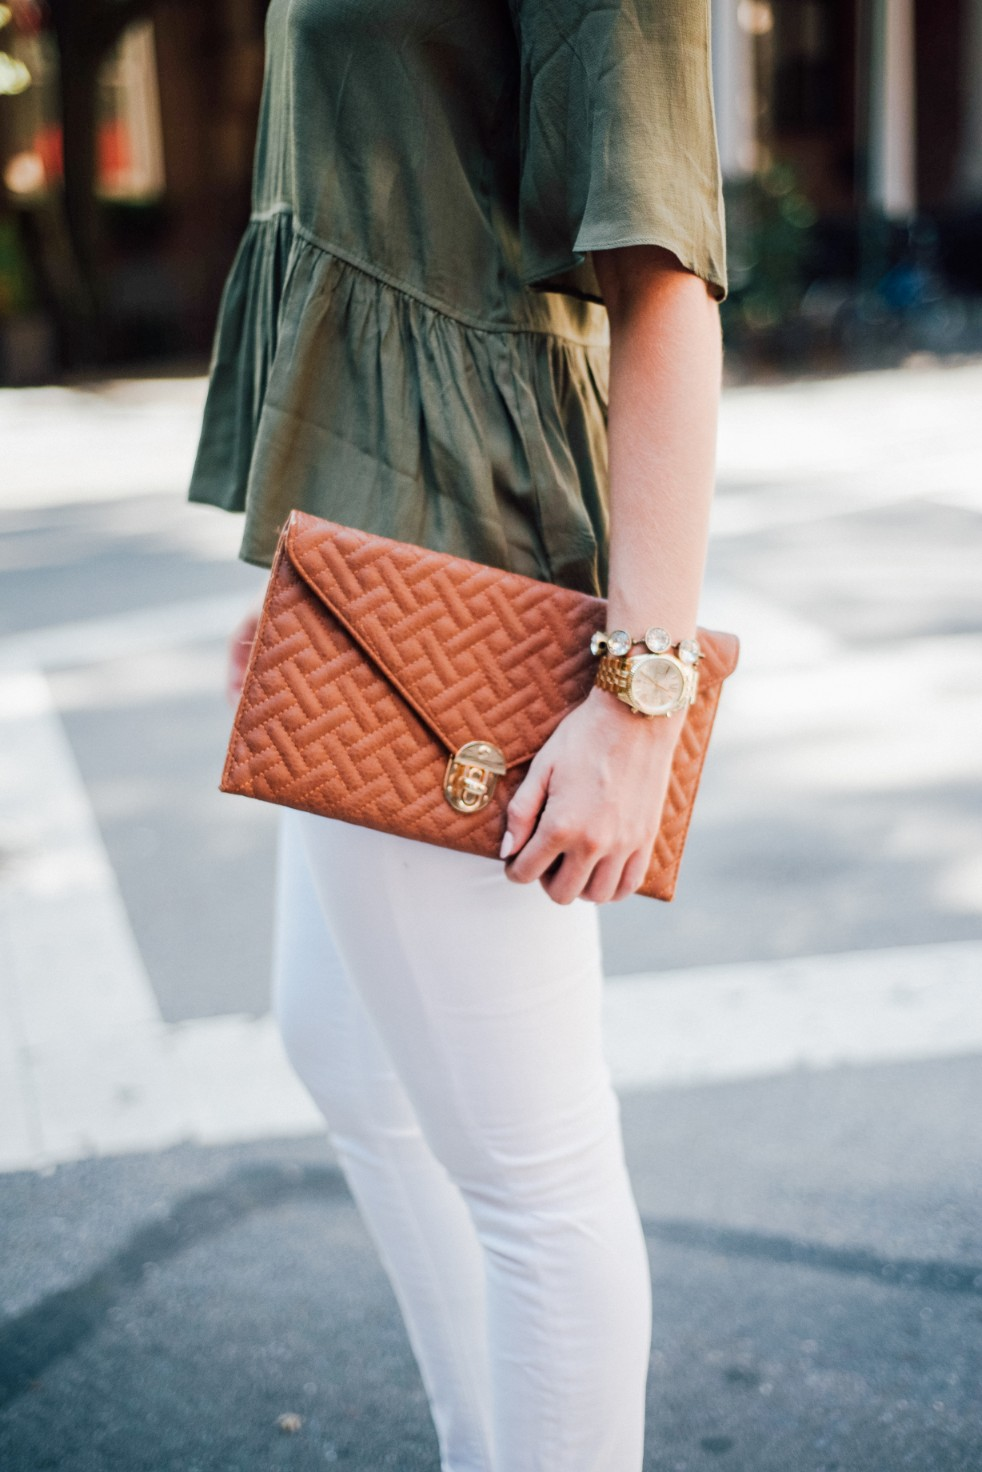 white jeans and peplum top west village fashion new york fashion blogger lauren slade style elixir blog spring outfit ideas 4 - Style Sessions - White Jeans and Peplum Top in the West Village featured by popular US style blogger, Style Elixir